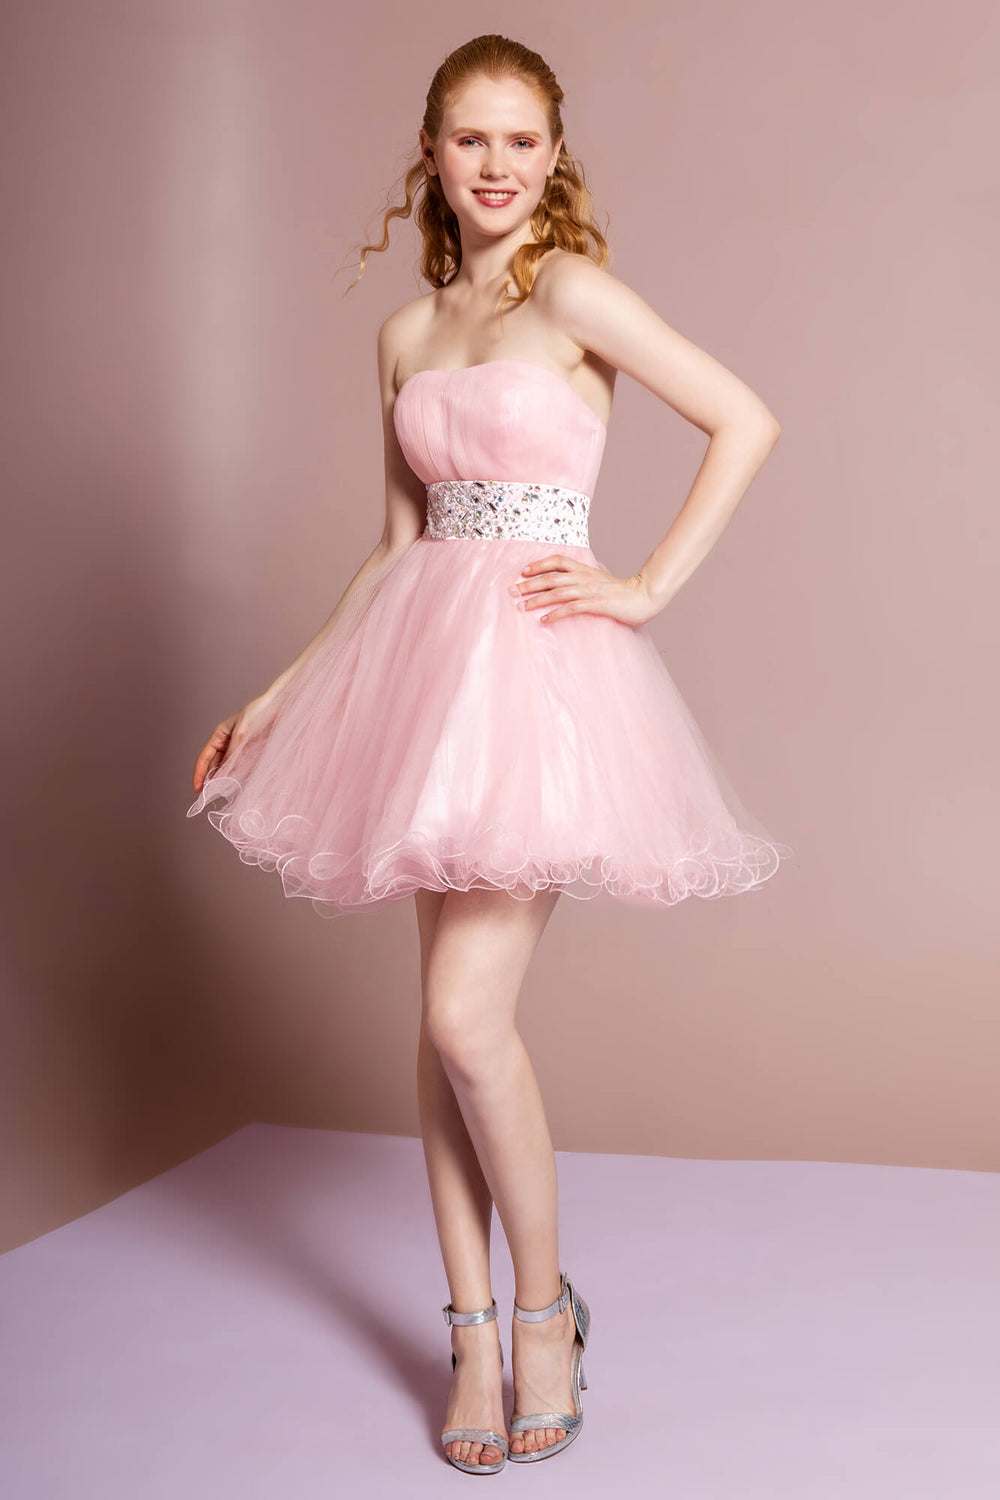 Strapless Sweetheart Prom Short Dress - The Dress Outlet Blush